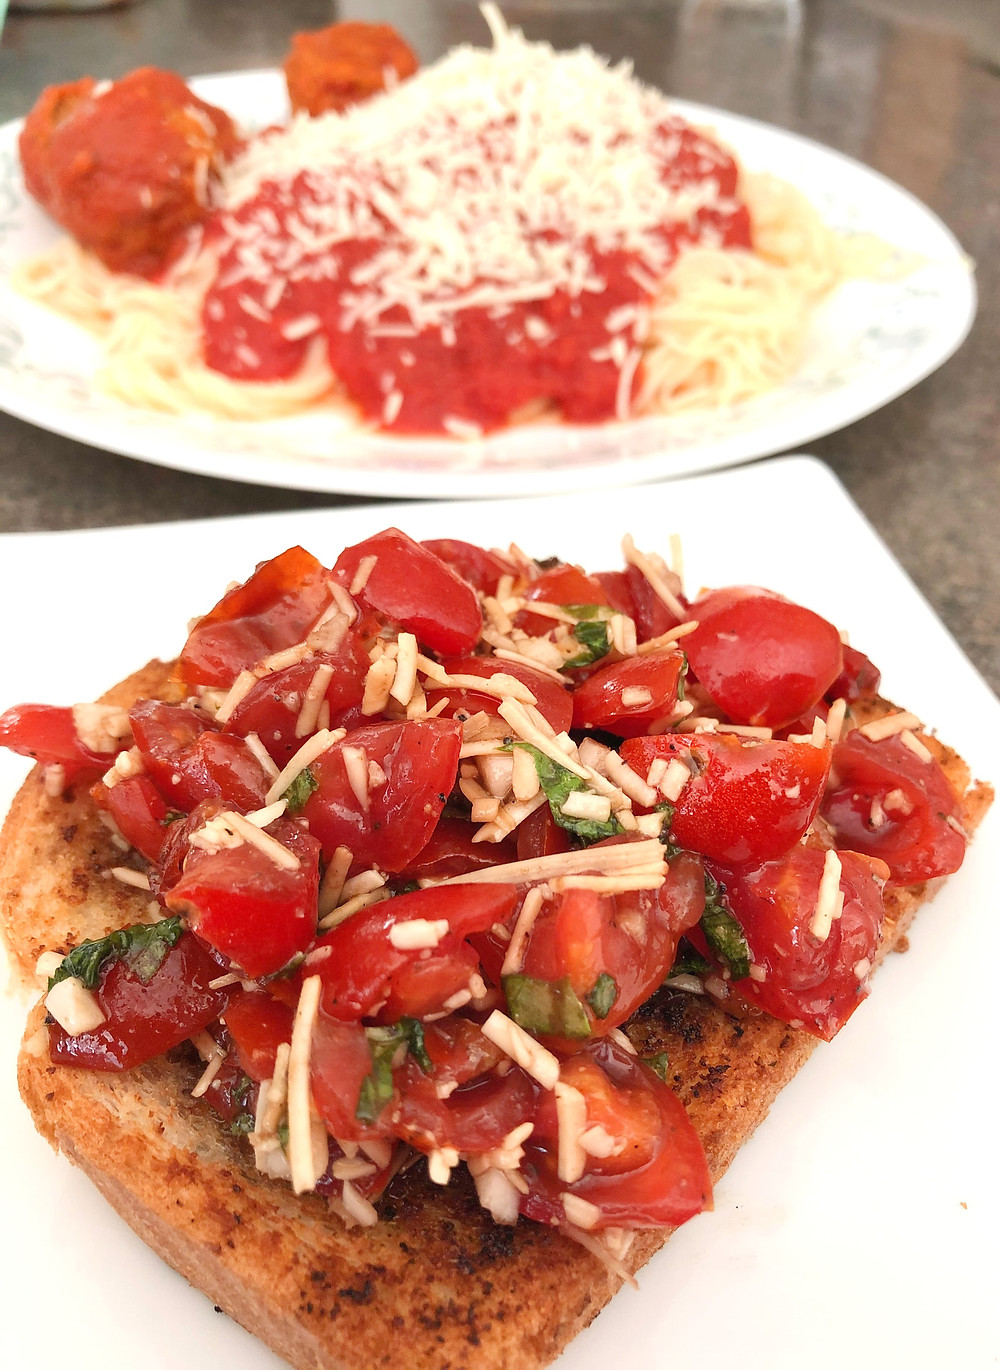 A slice of toasted bread is loaded with red ripened tomatoes, flakes of white cheese and slivers of green basil.  A plate of spaghetti and meatballs sits in the background.